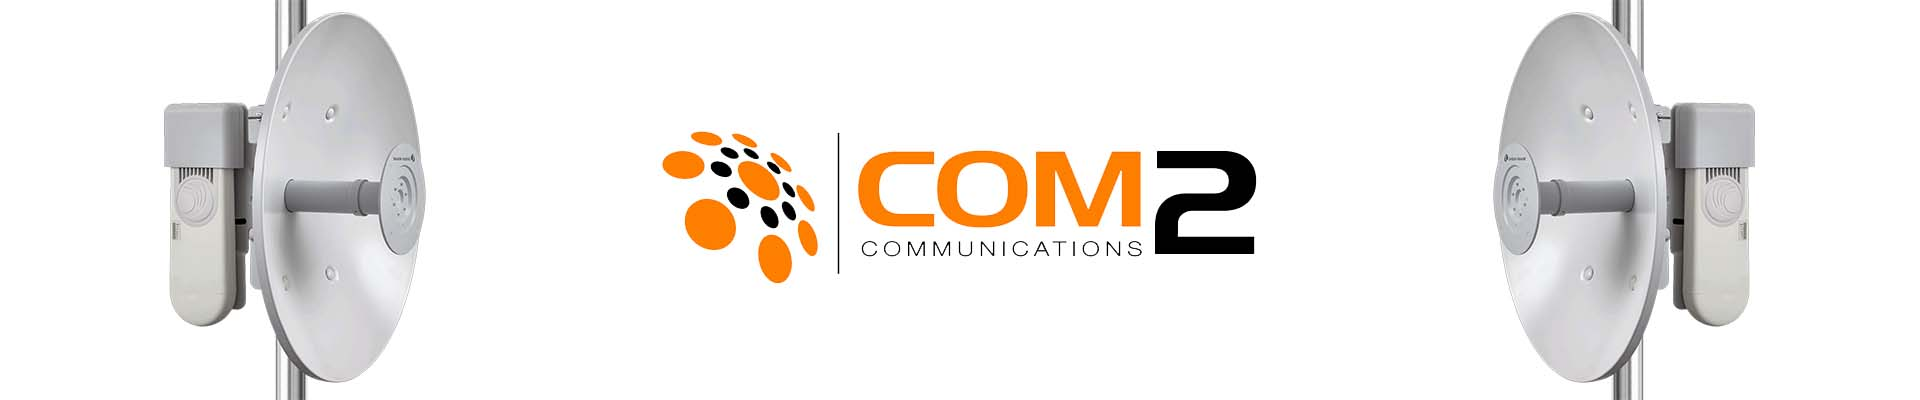 Two Microwave Dishes pointing at each other with a Com2 Communications logo in between